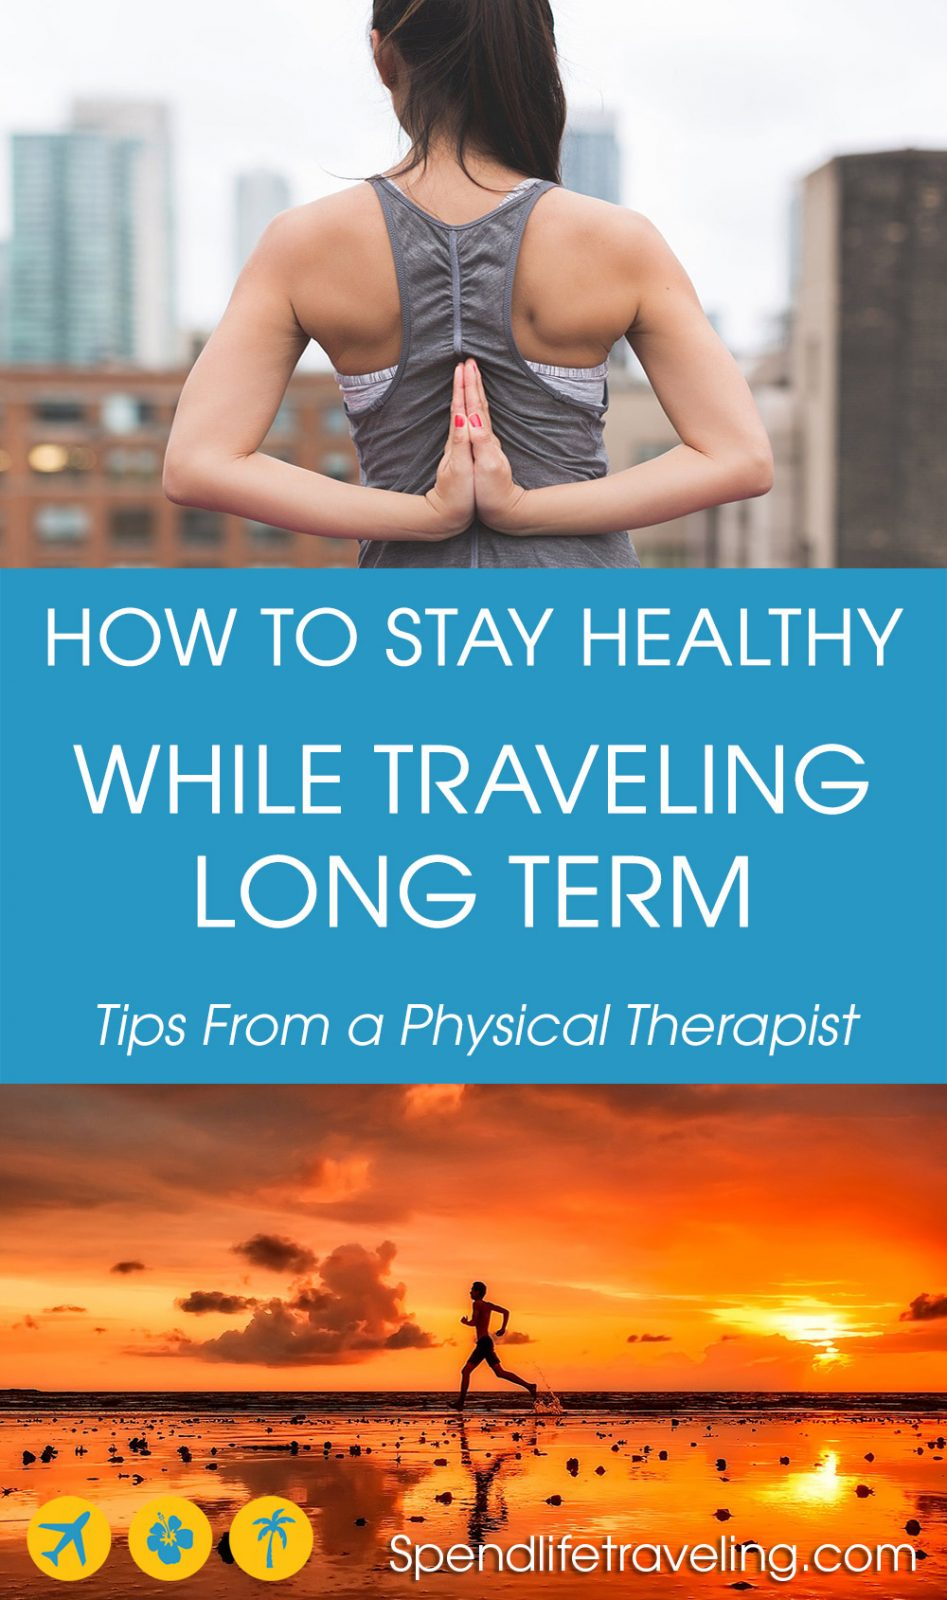 a list of practical tips to keep your body and mind healthy while traveling long term (or short term).